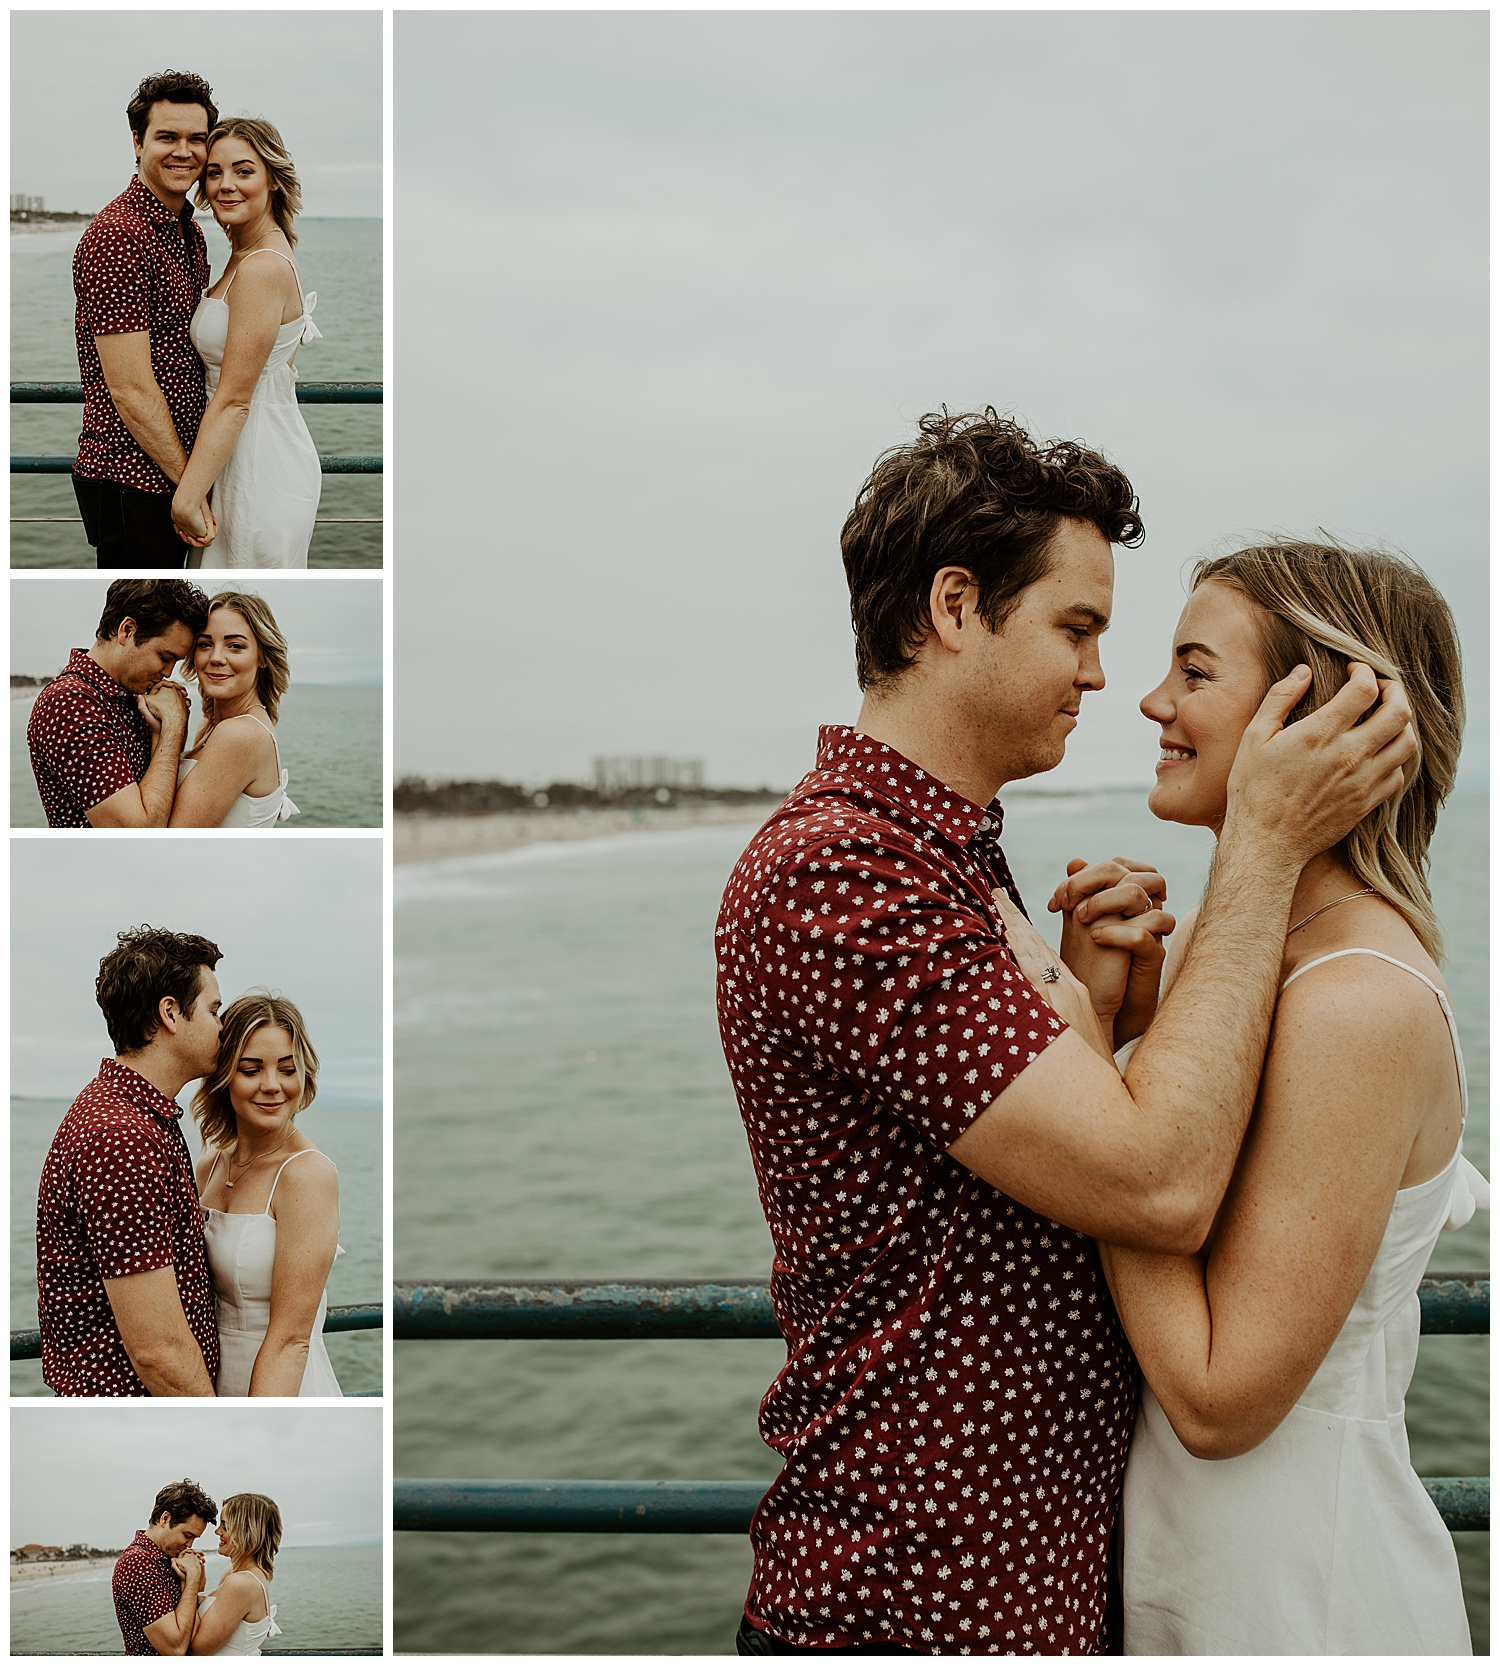 Laken-Mackenzie-Photography-Santa-Monica-Pier-Couples-Session-Kami-TJ-Malibu-Couples-Session10.jpg